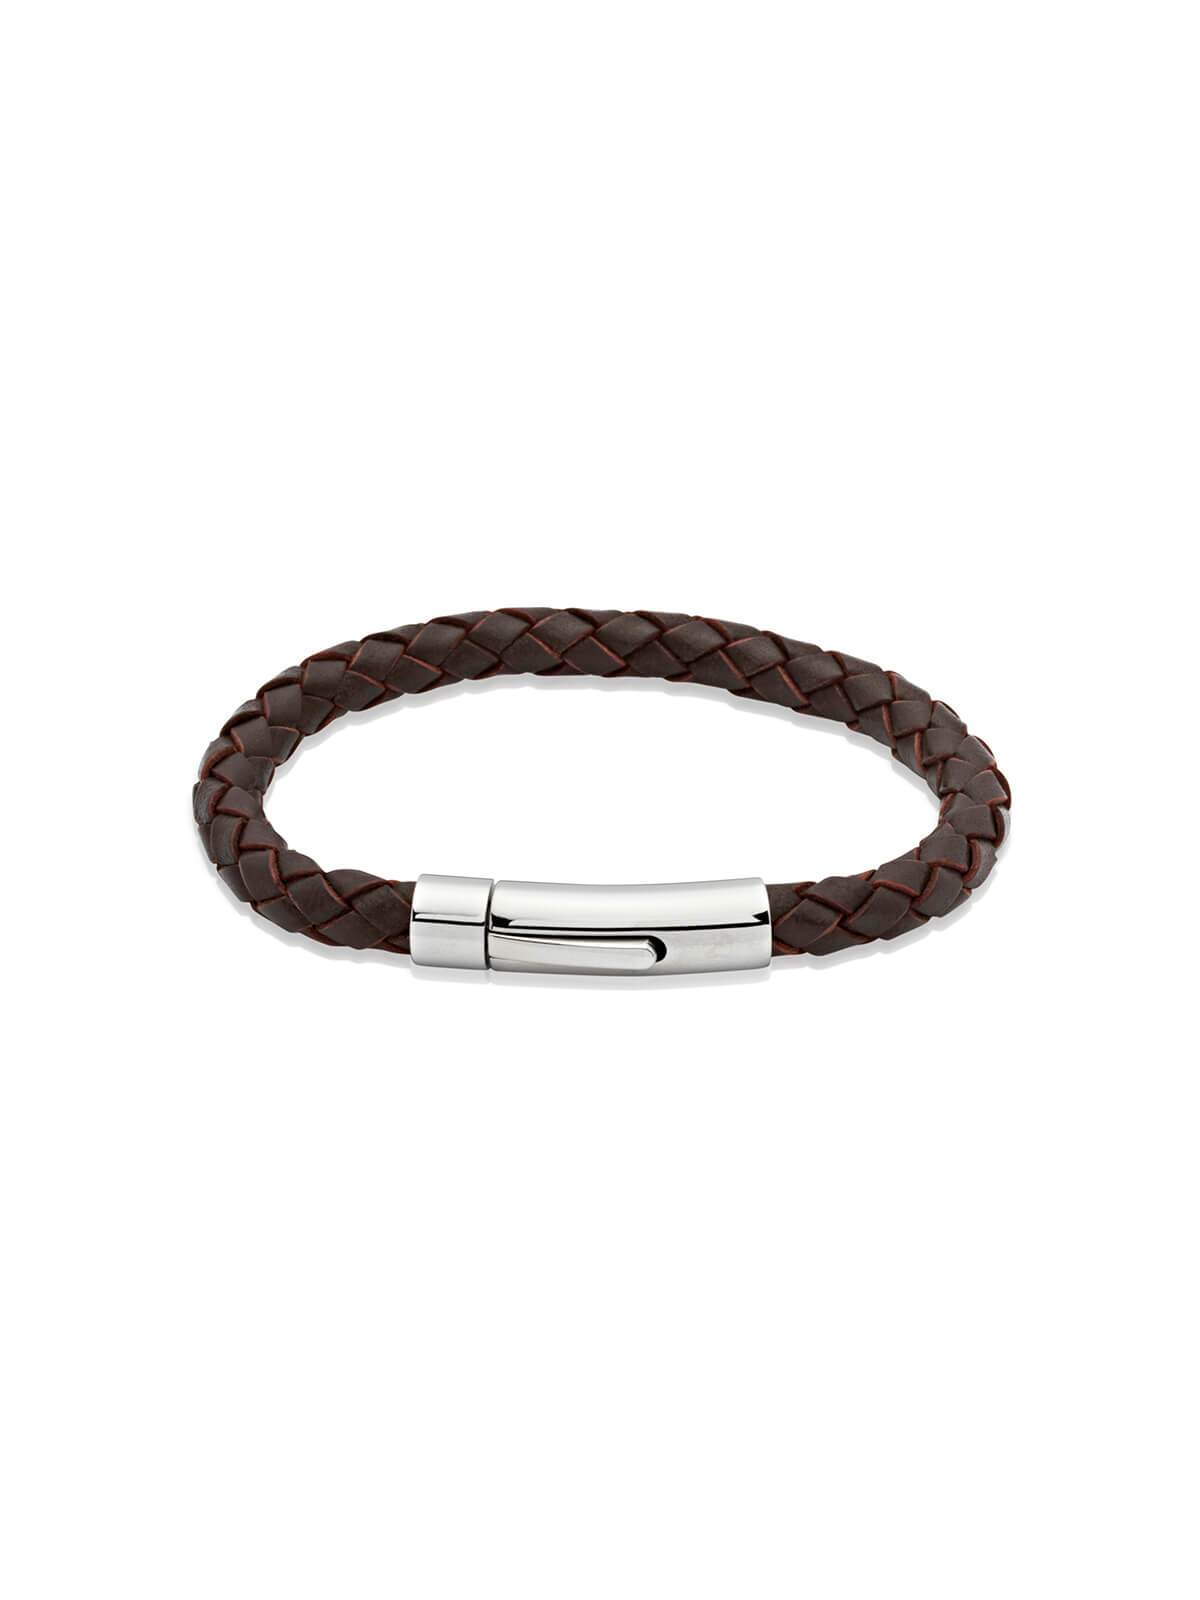 Unique & Co. 23cm Dark Brown Leather Bracelet A40DB/23CM